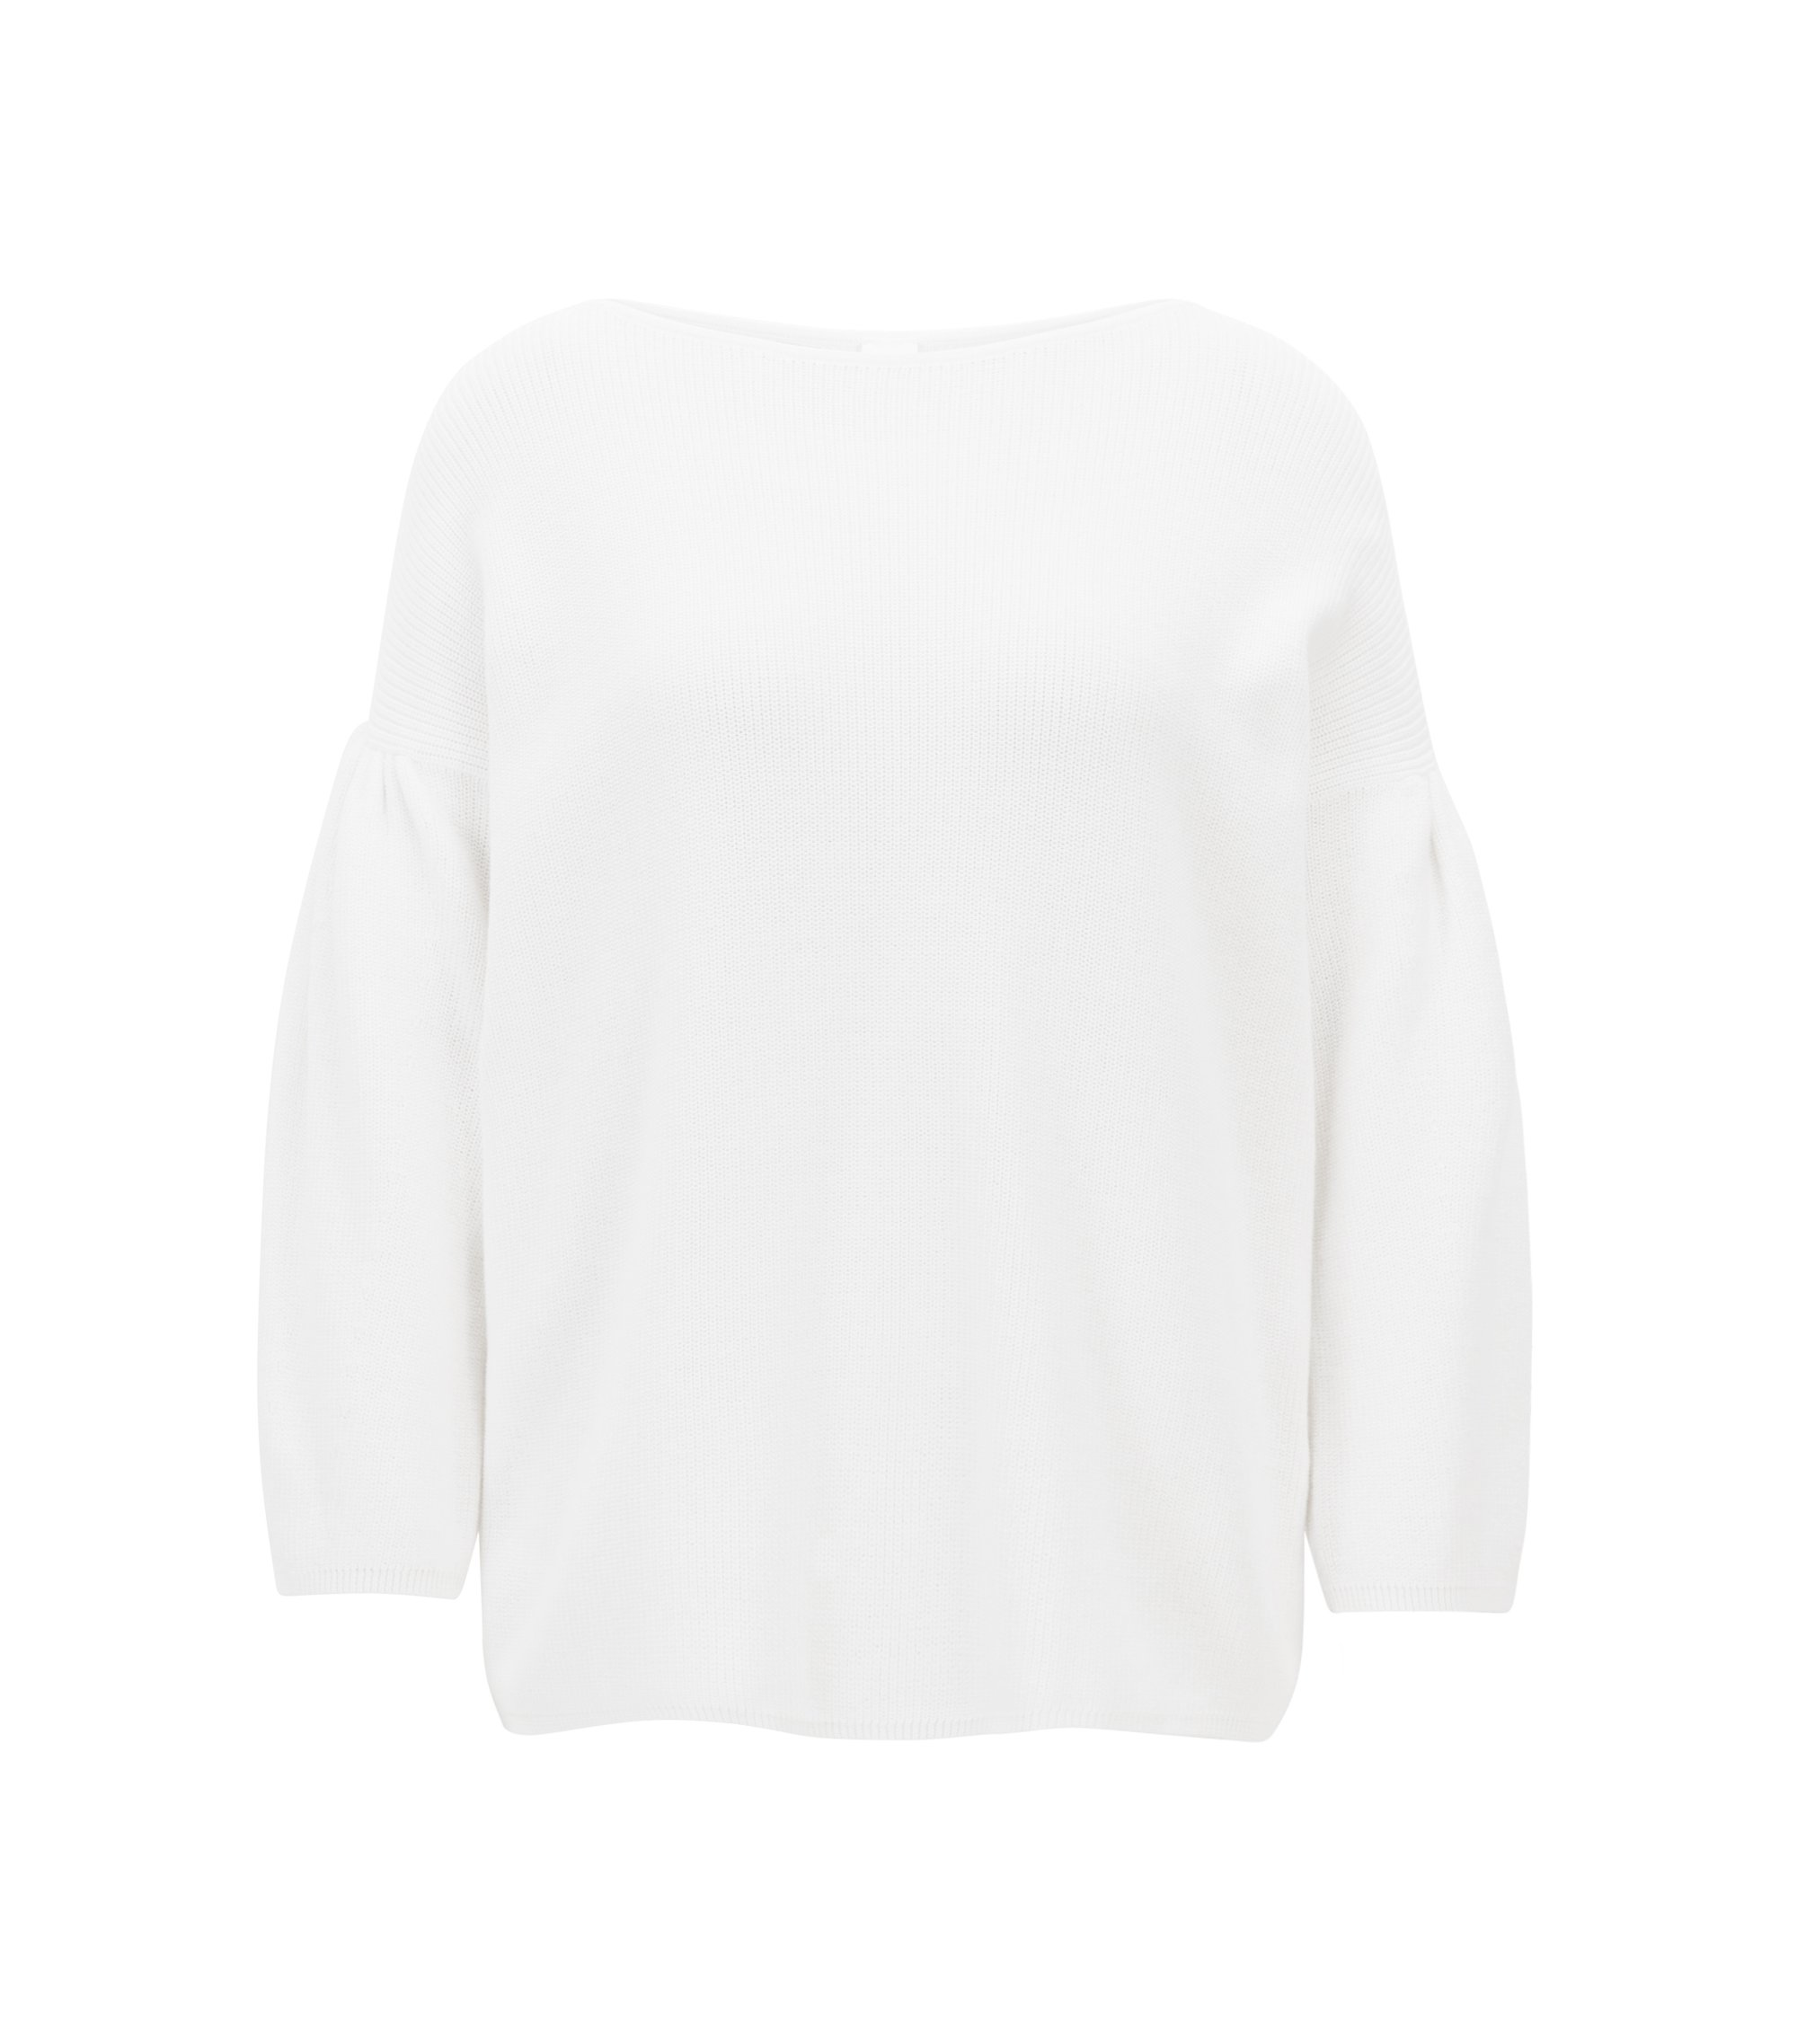 Boat-neck sweater with dropped shoulders and gathered sleeves, White